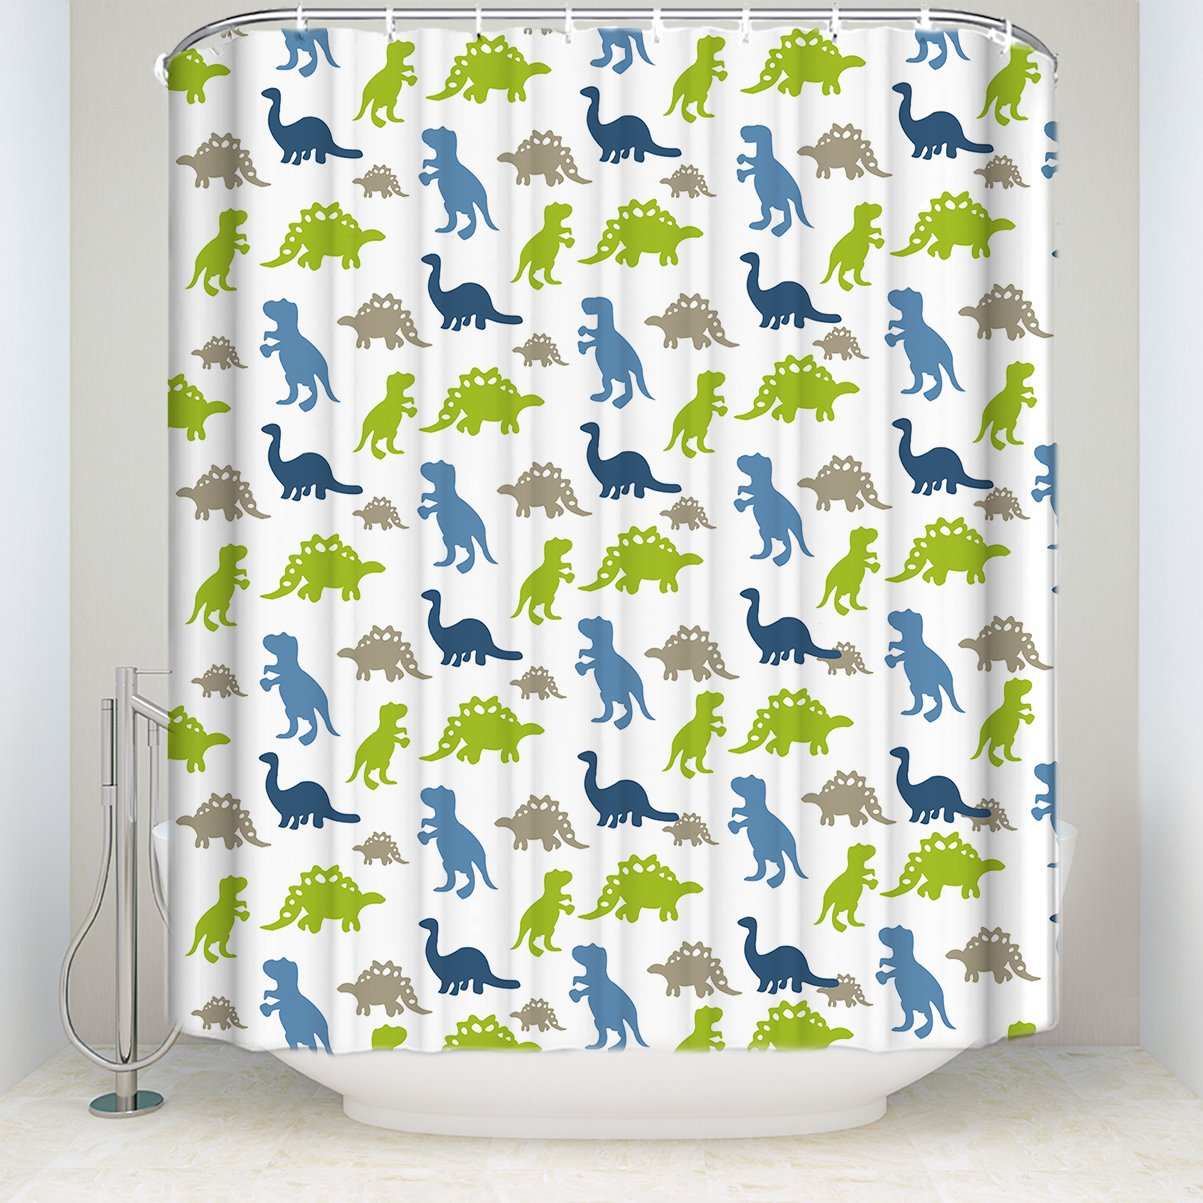 Z&L Home Dinosaurs Shower Curtain Sets Collection of Various Funny Dinosaurs Design Bathroom Decorations Polyester Fabric Childrens/Kids/Teens/Students/Girls/Boys 54x78Inches